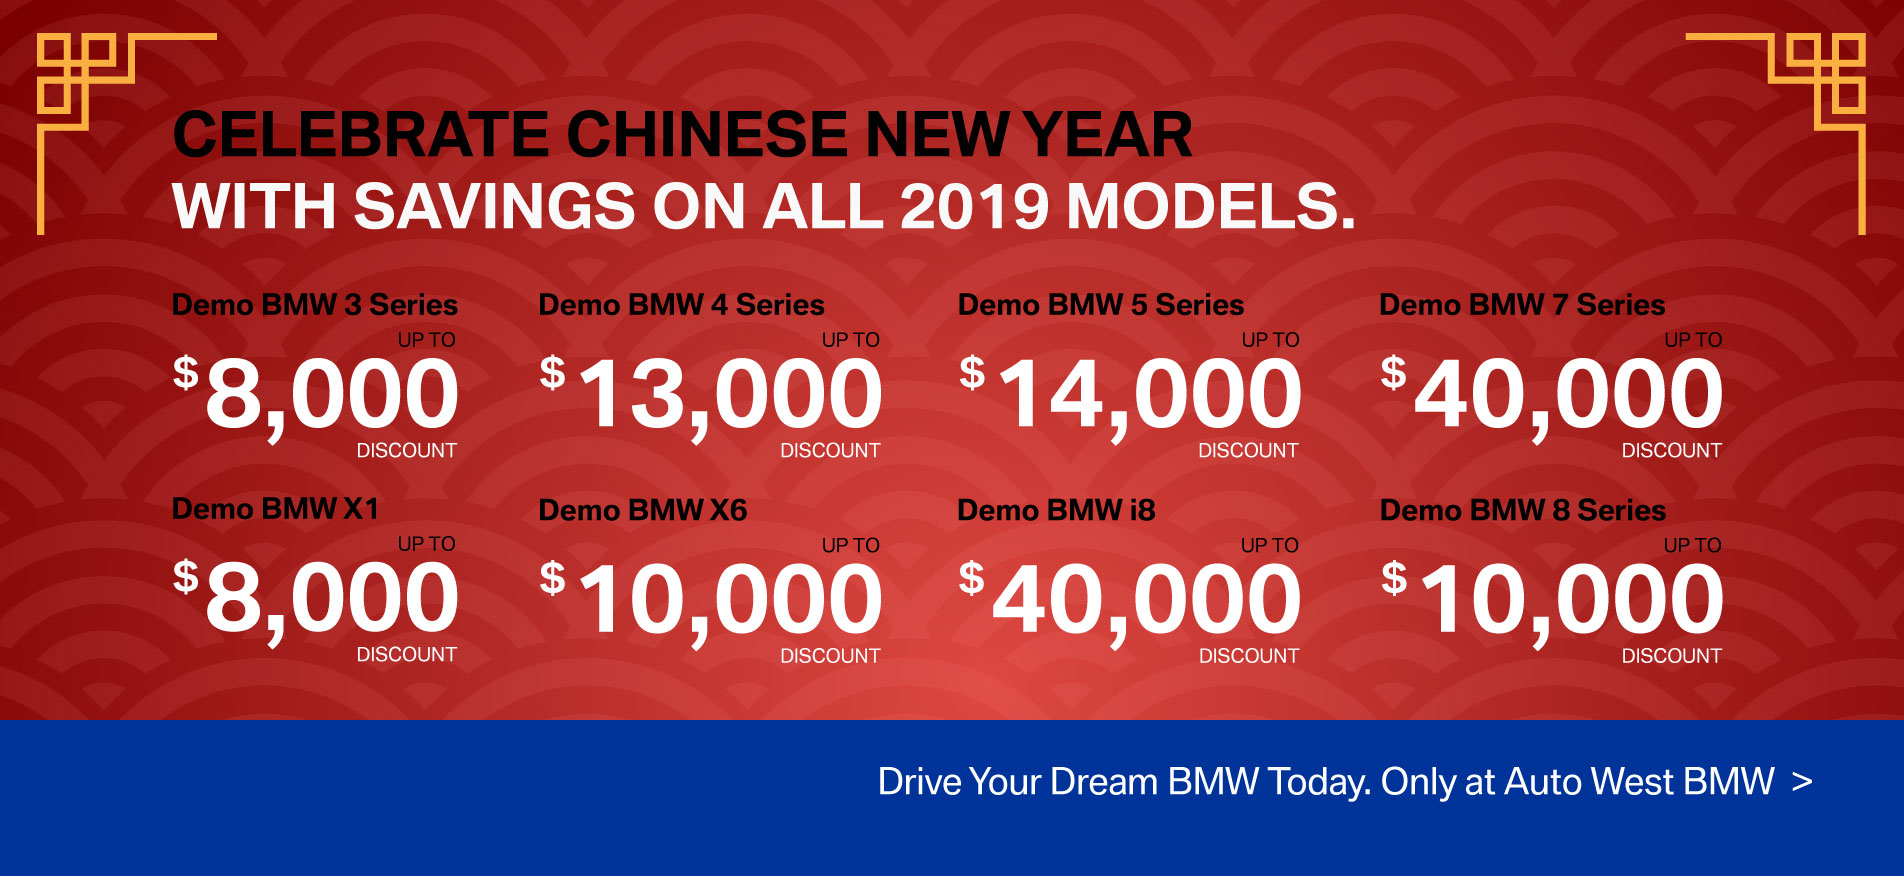 Auto West BMW Chinese New Year Sale 2020